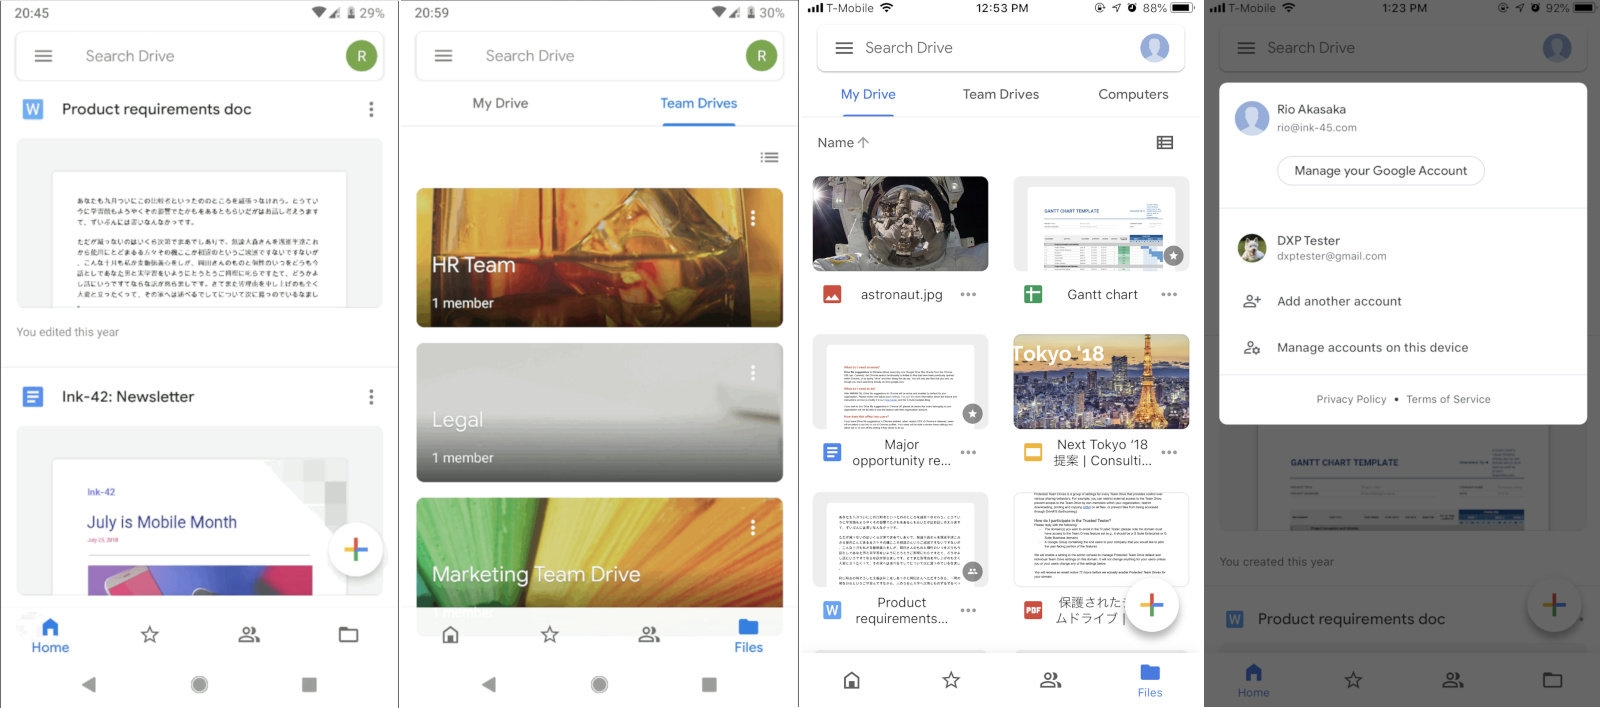 Google Drive apps get a redesign to match its look on the web | DeviceDaily.com